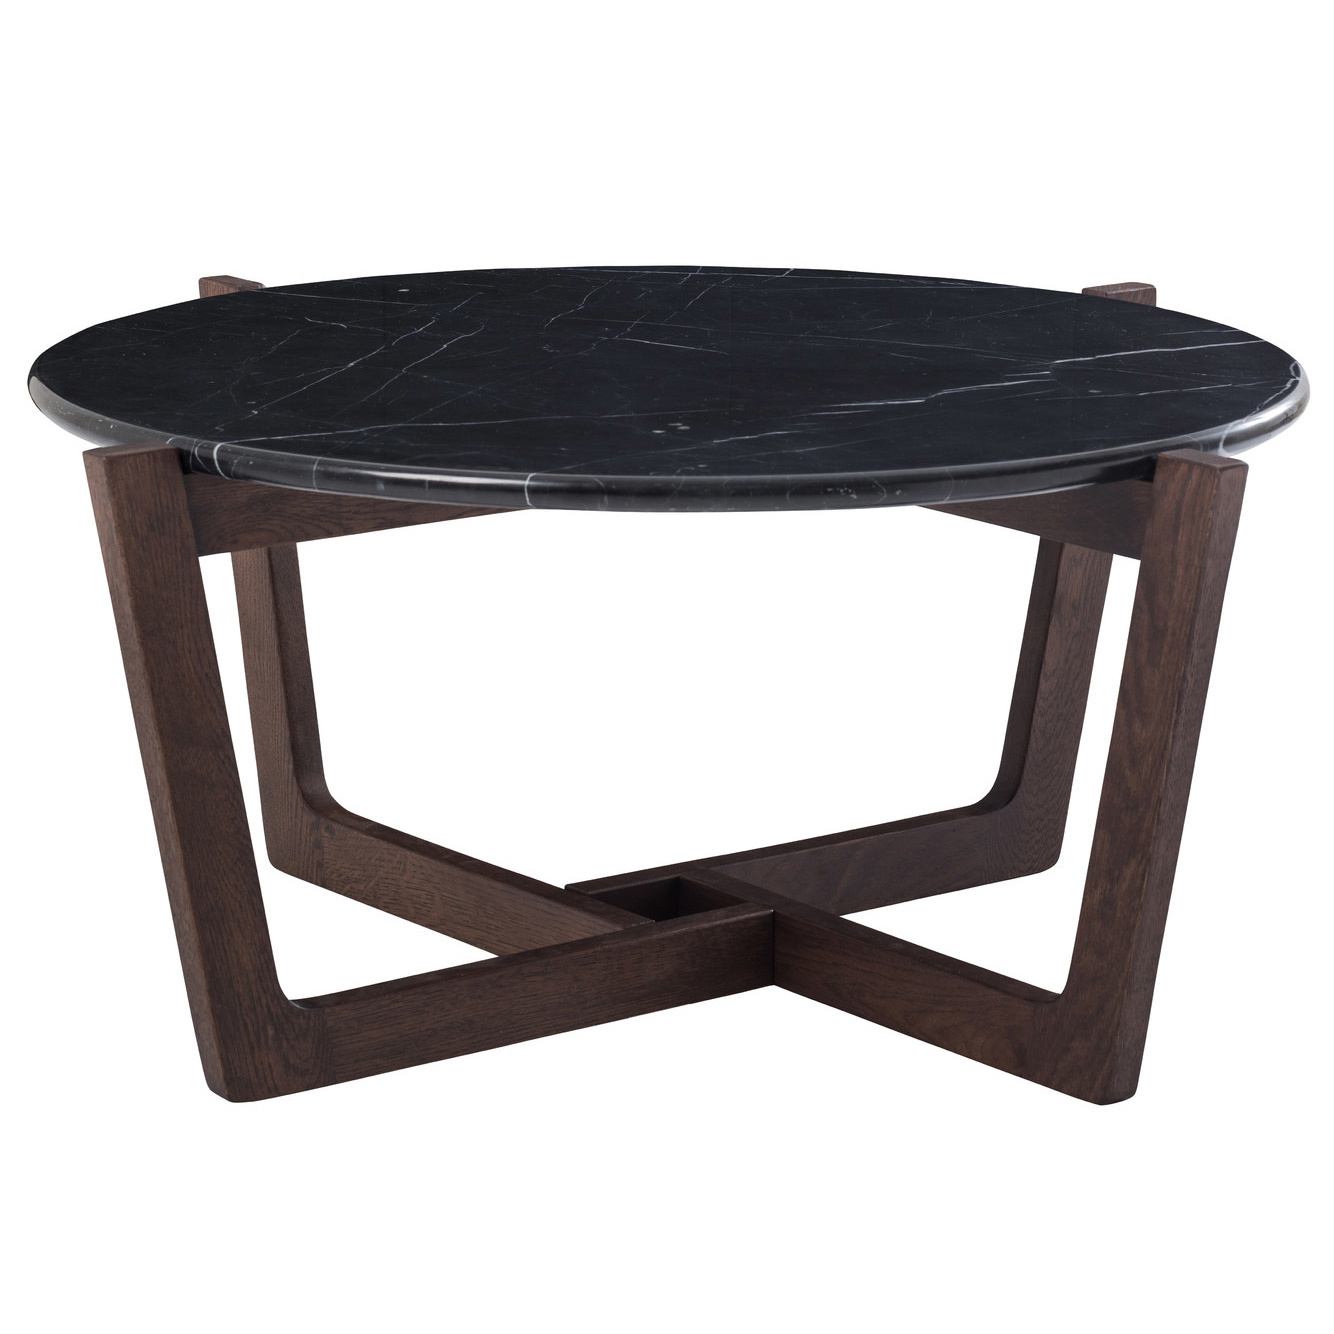 Monterey black marble coffee table temple webster sku esta1133 monterey black marble coffee table is also sometimes listed under the following manufacturer numbers 10143 1 geotapseo Image collections